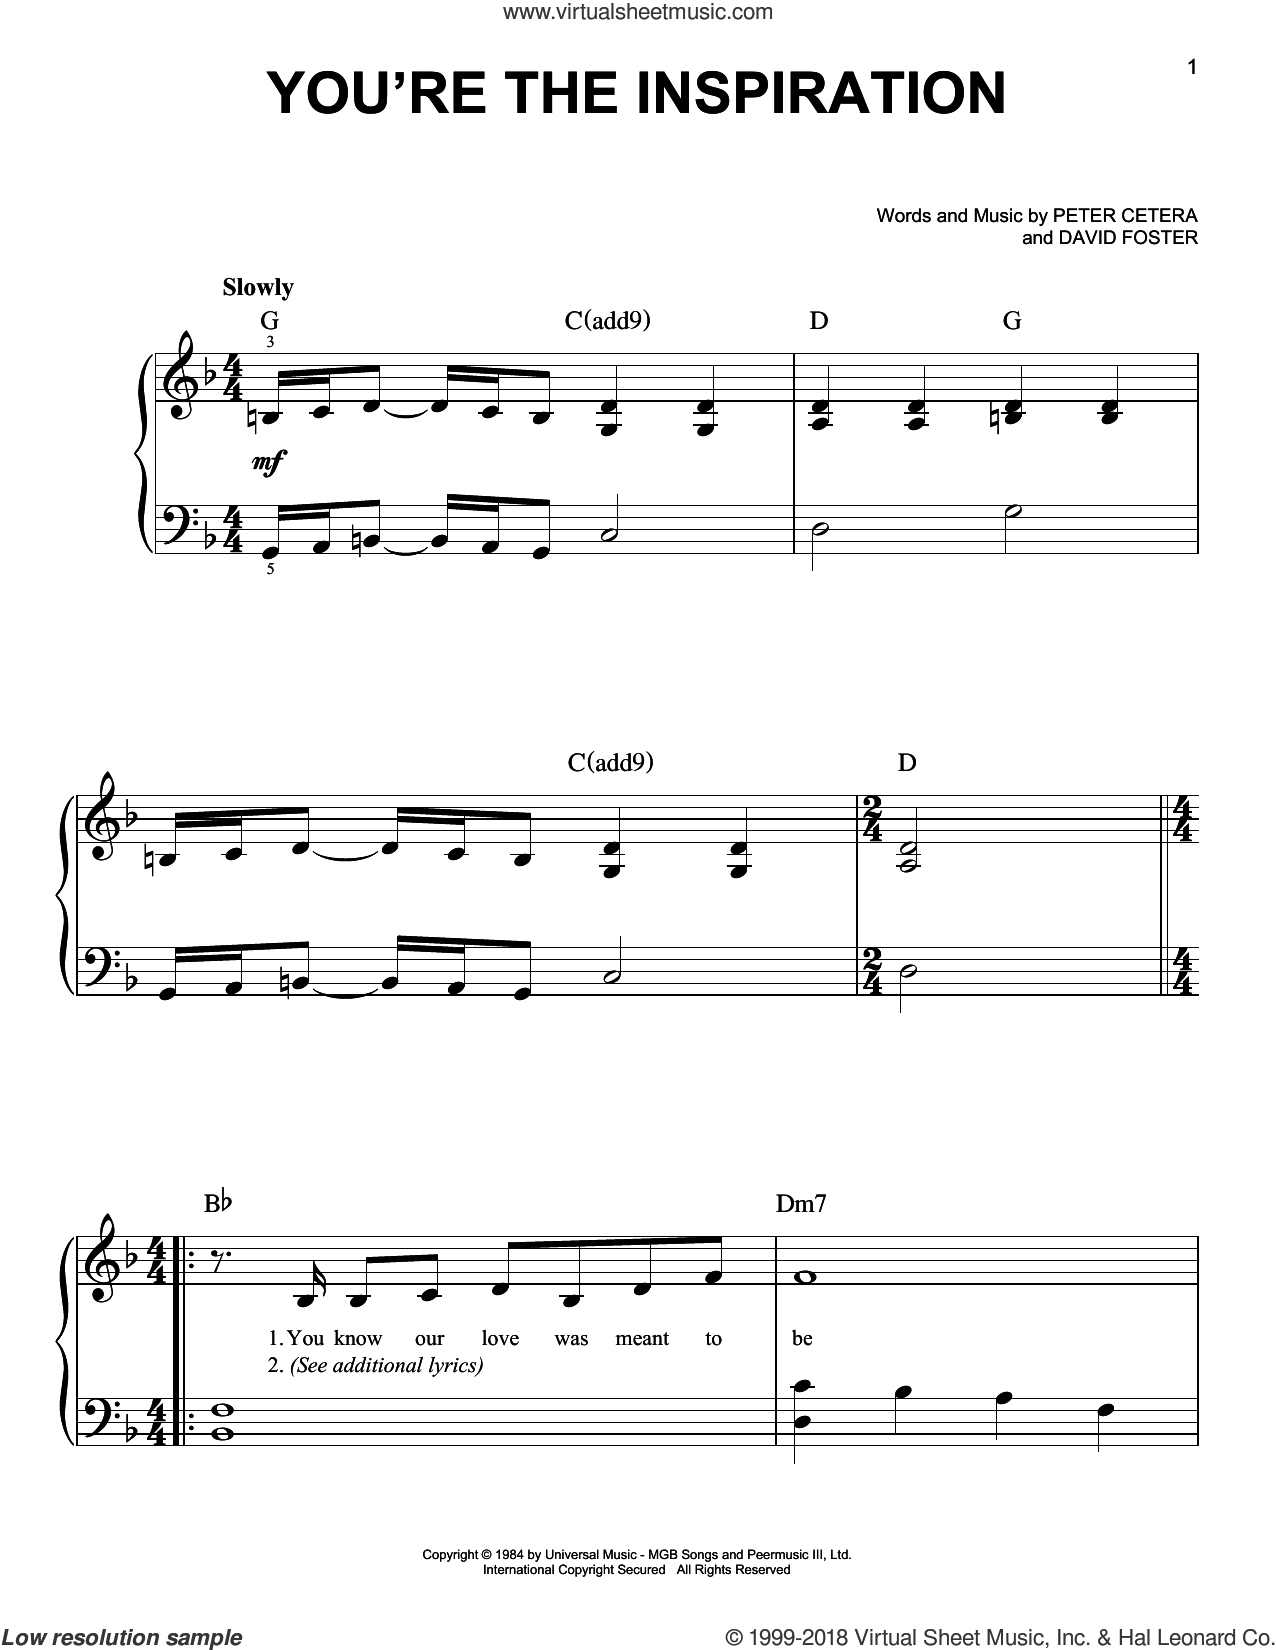 You're The Inspiration sheet music for piano solo by Chicago, David Foster and Peter Cetera, beginner skill level